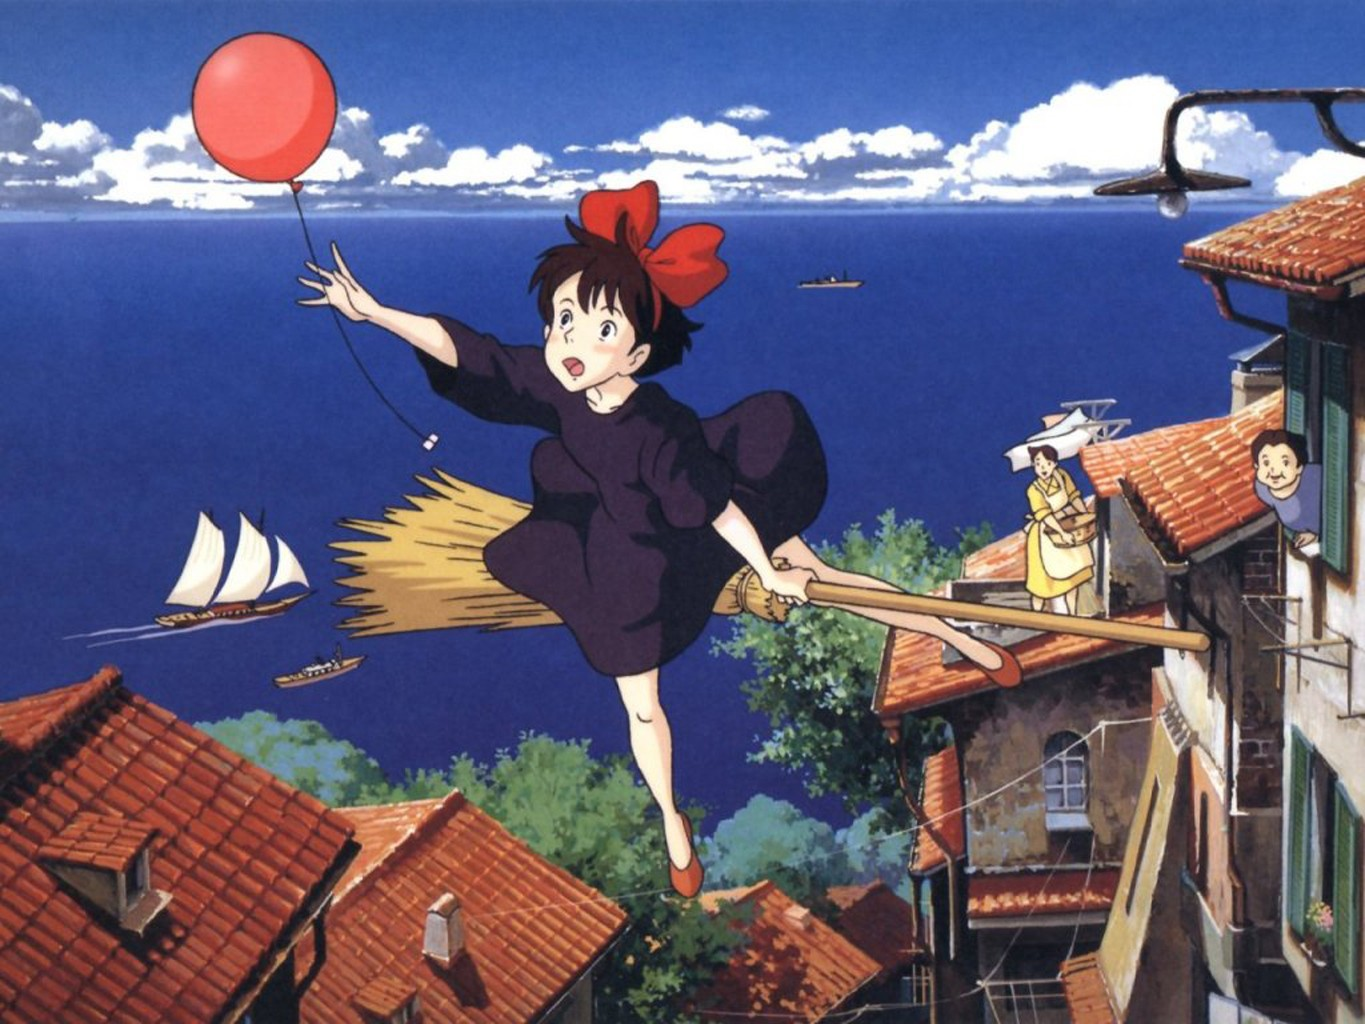 Kikis Delivery Service Images Kiki HD Wallpaper And Background Photos